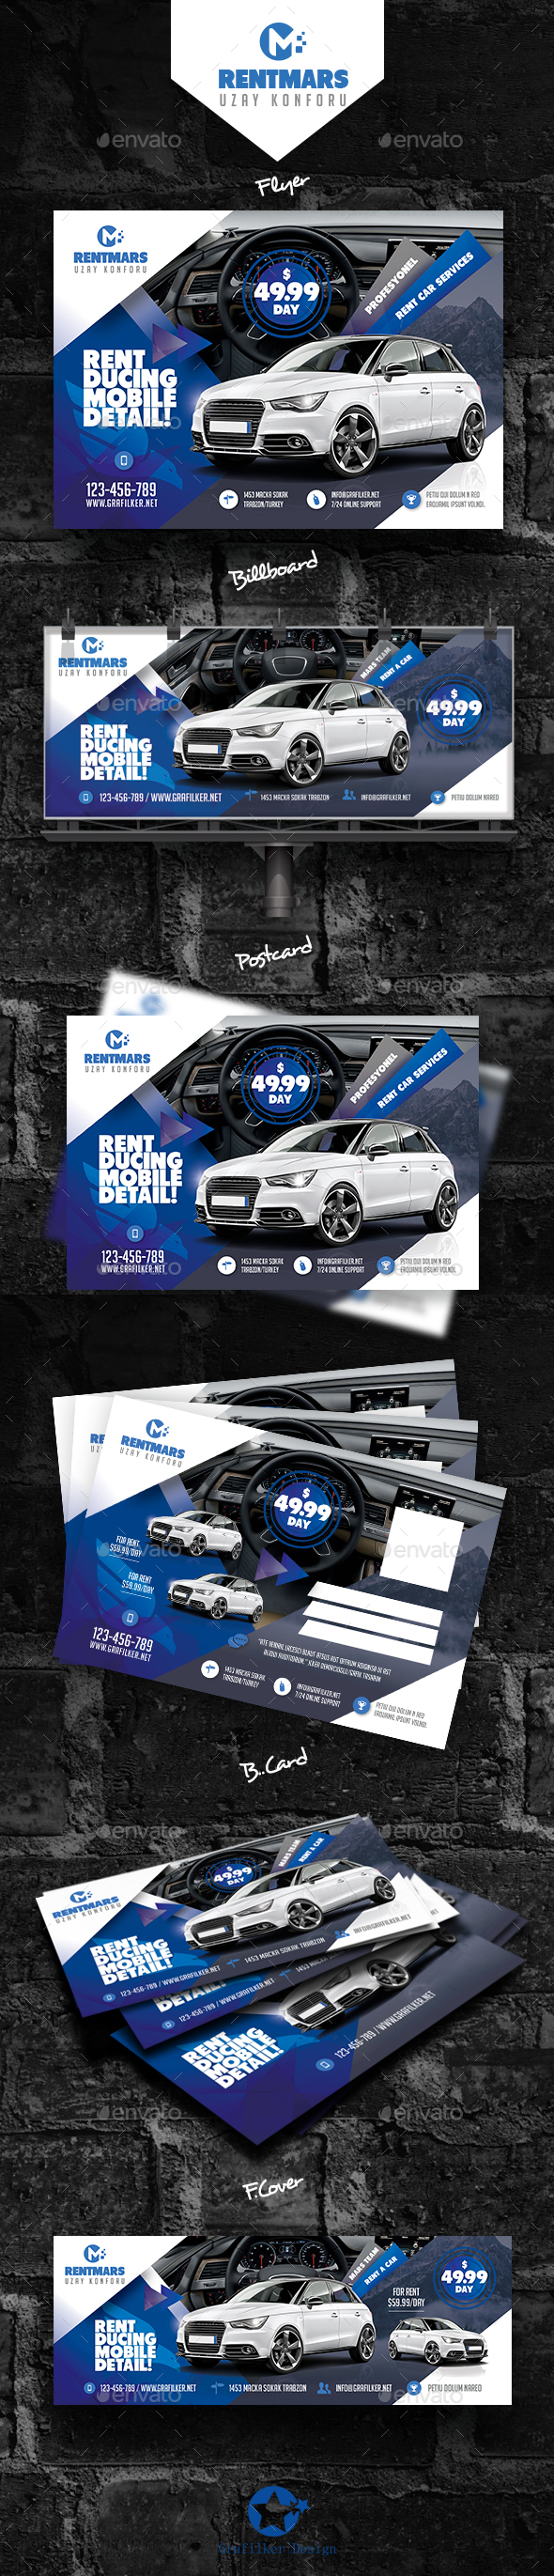 Rent A Car Bundle Templates - Corporate Flyers